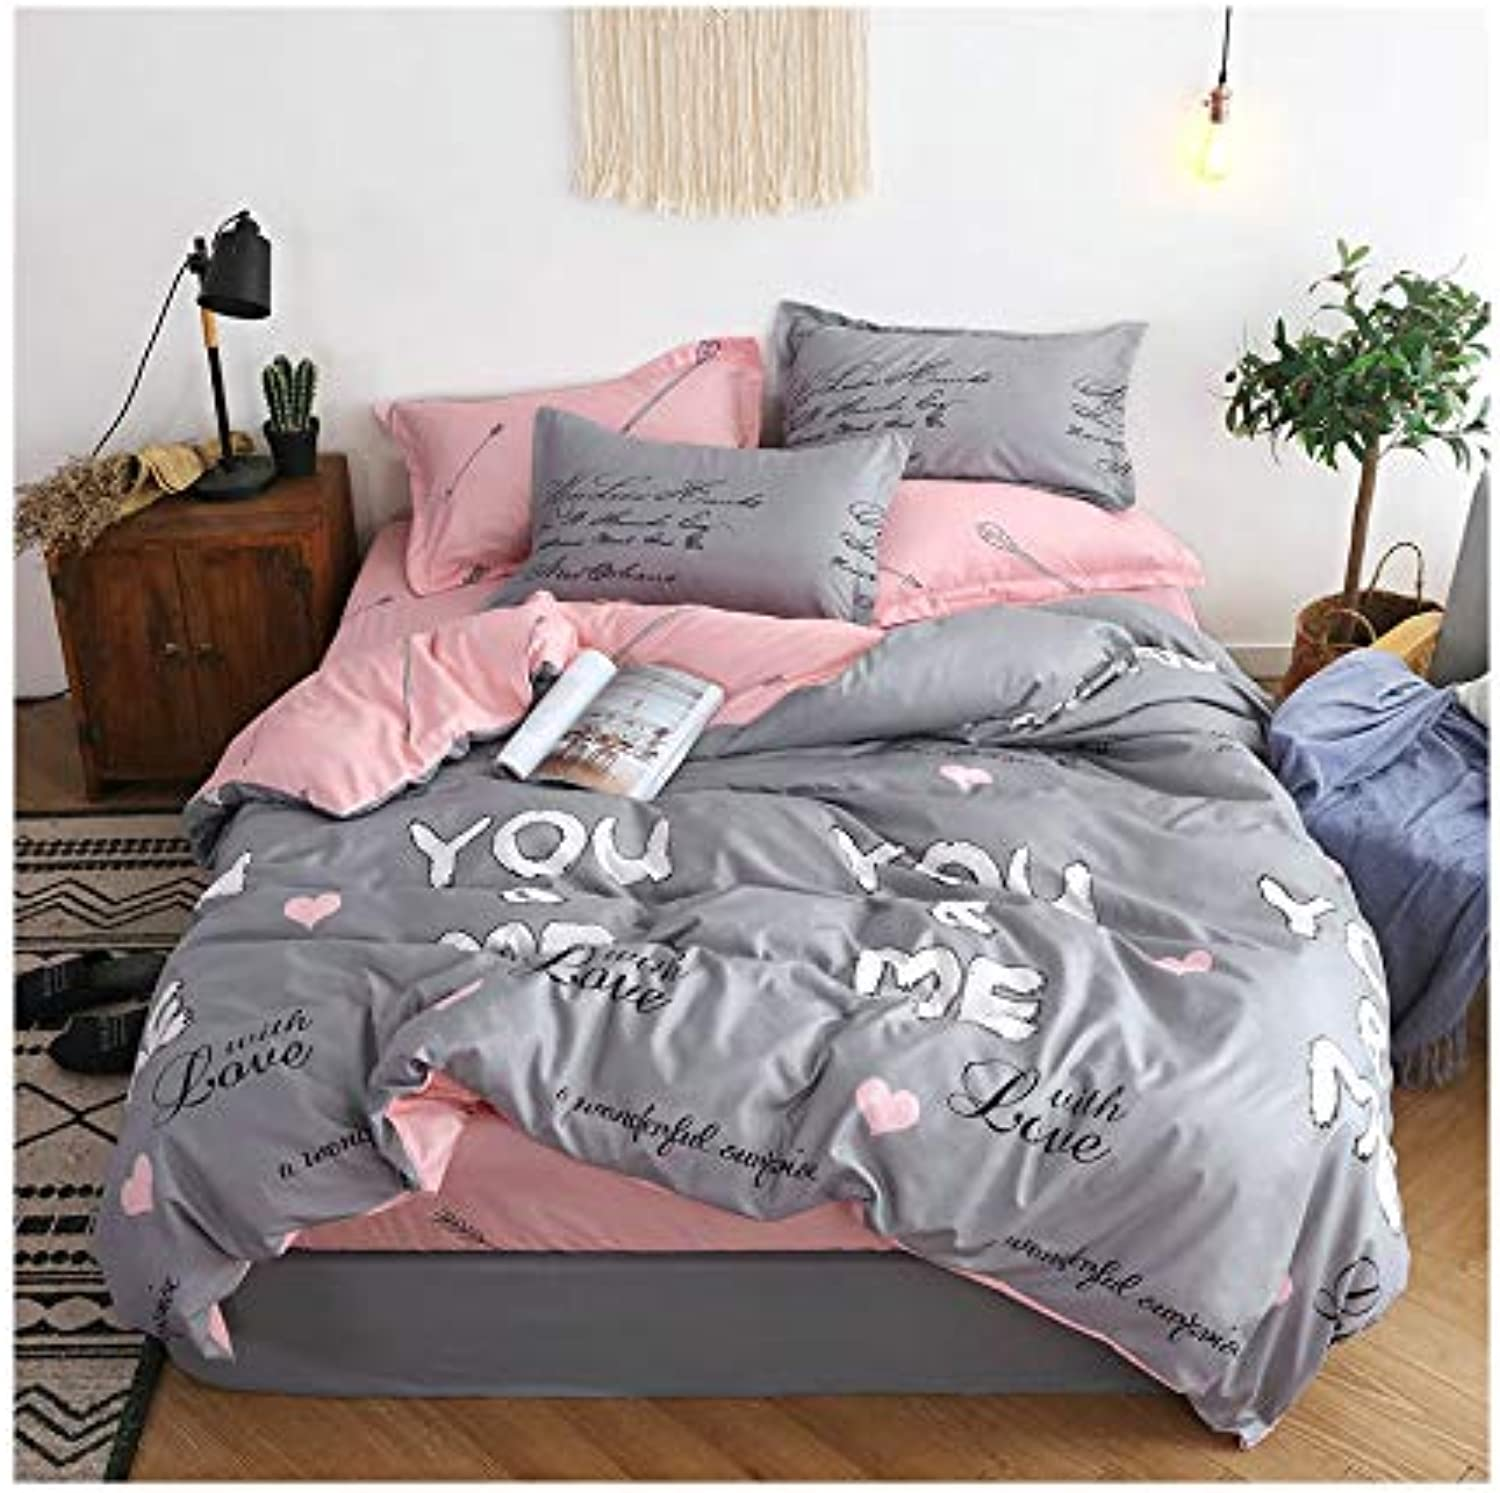 KFZ Flower Leaf Printed Bed Set BeddingSet Includes Comforter Cover Fitted Sheet Pillowcases Twin Full Queen Sheets Set Plant Design for Kids Adult 4pcs (You Me, Grey, Twin 60 x80 )